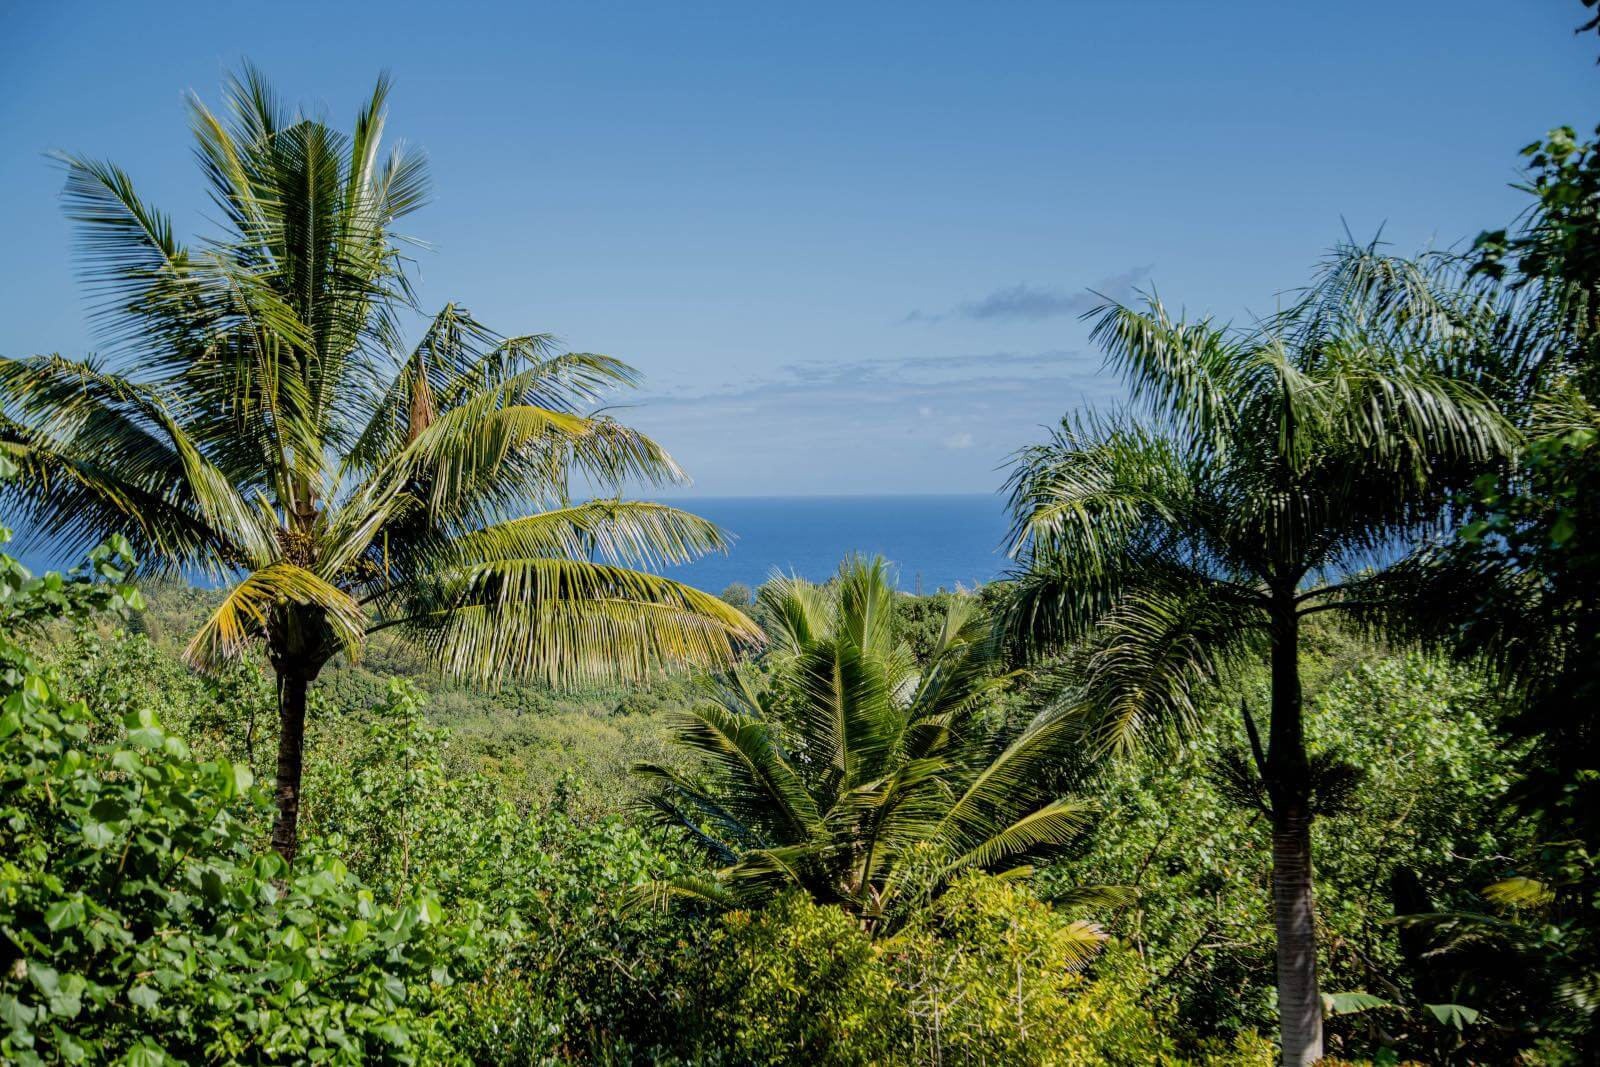 A beautiful outlook on the road to Hana